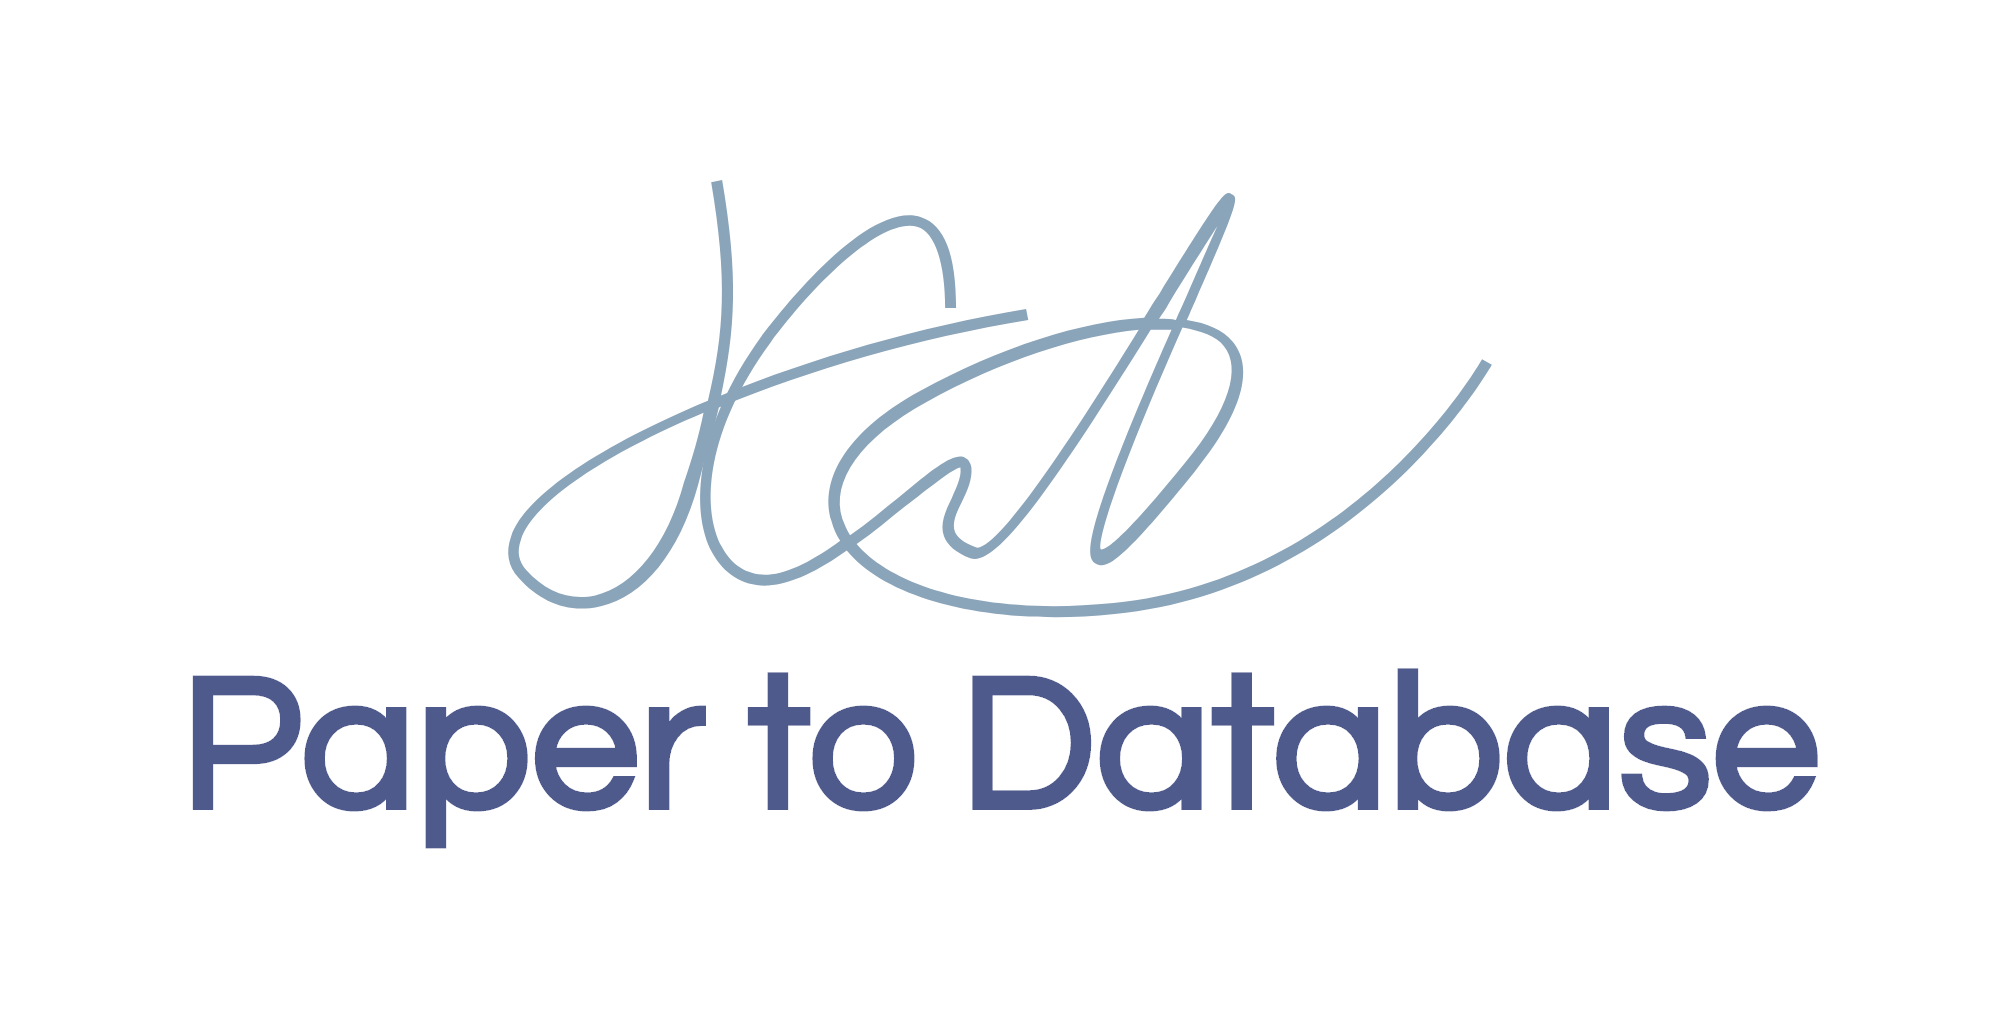 Paper to Database